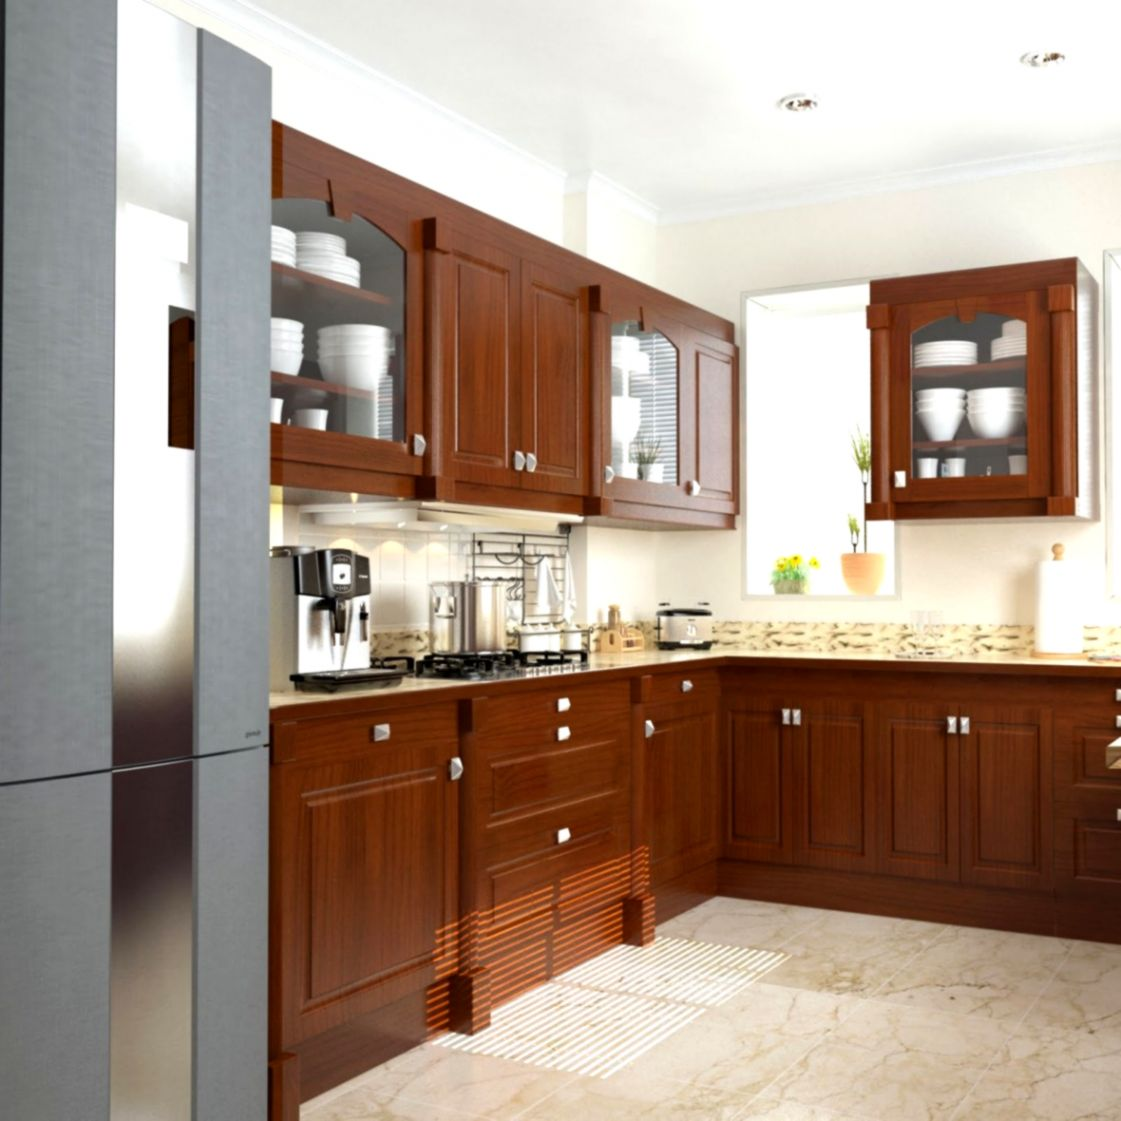 Design A Virtual Kitchen Online Free Virtual Home Designer Free Online Wallpapers For Fun